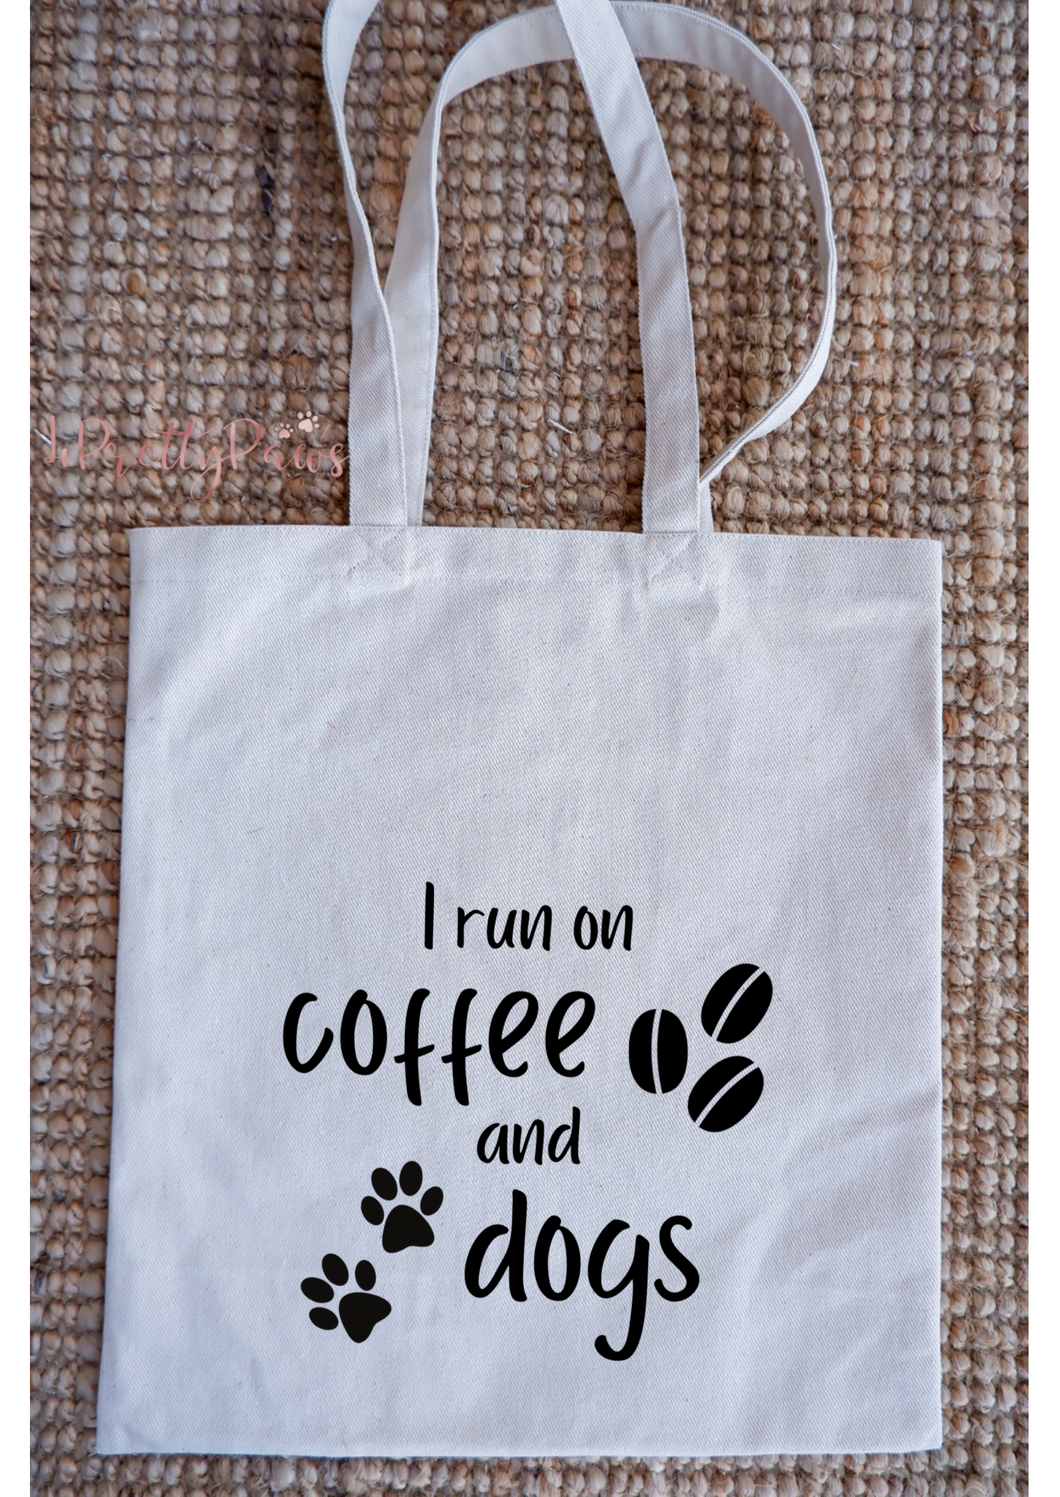 I run of coffee and dogs Tote Bag